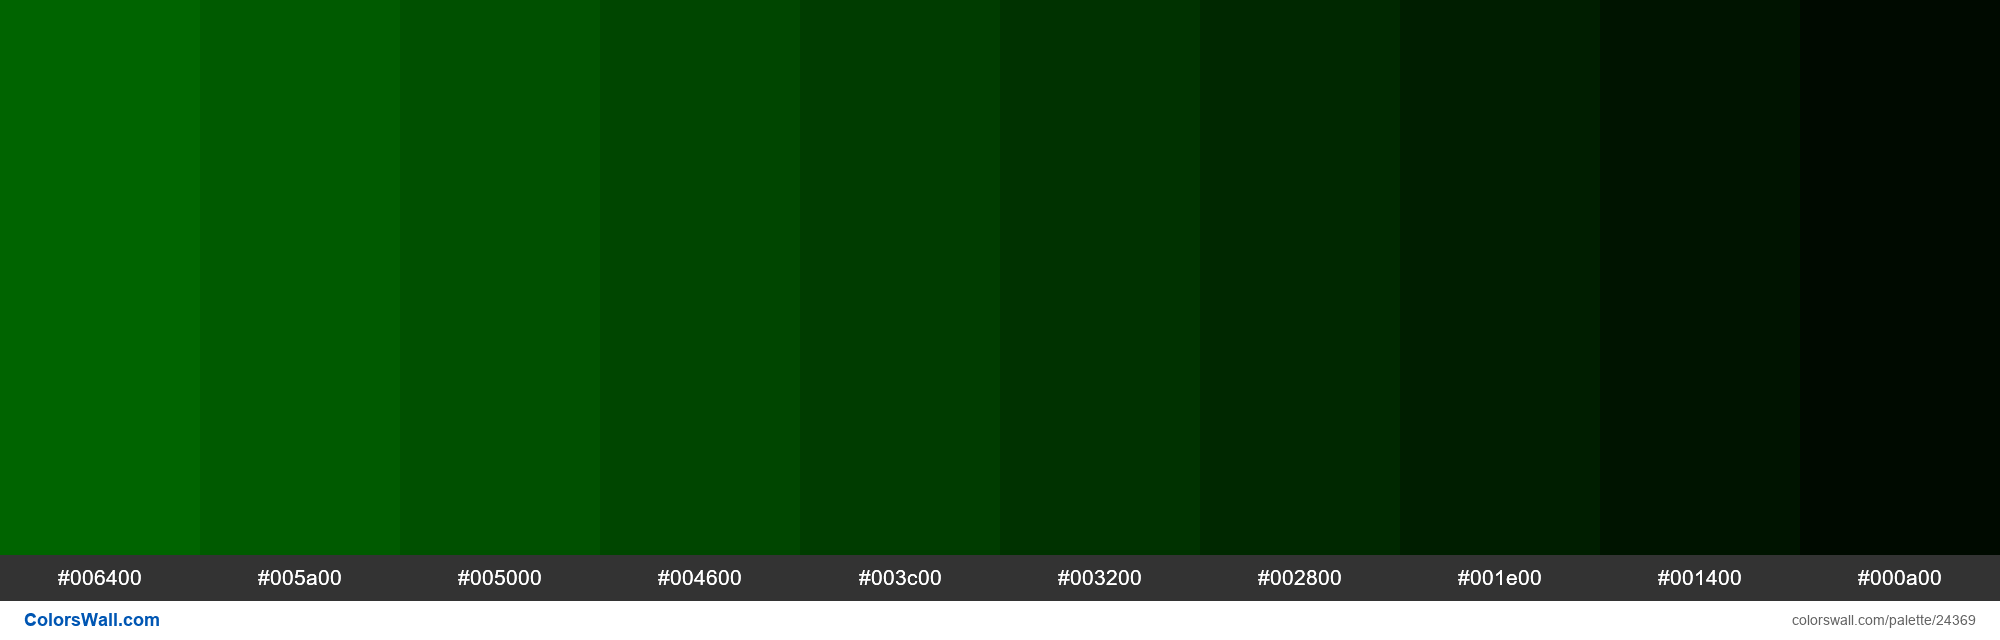 Shades of Dark Green #006400 hex color - #24369